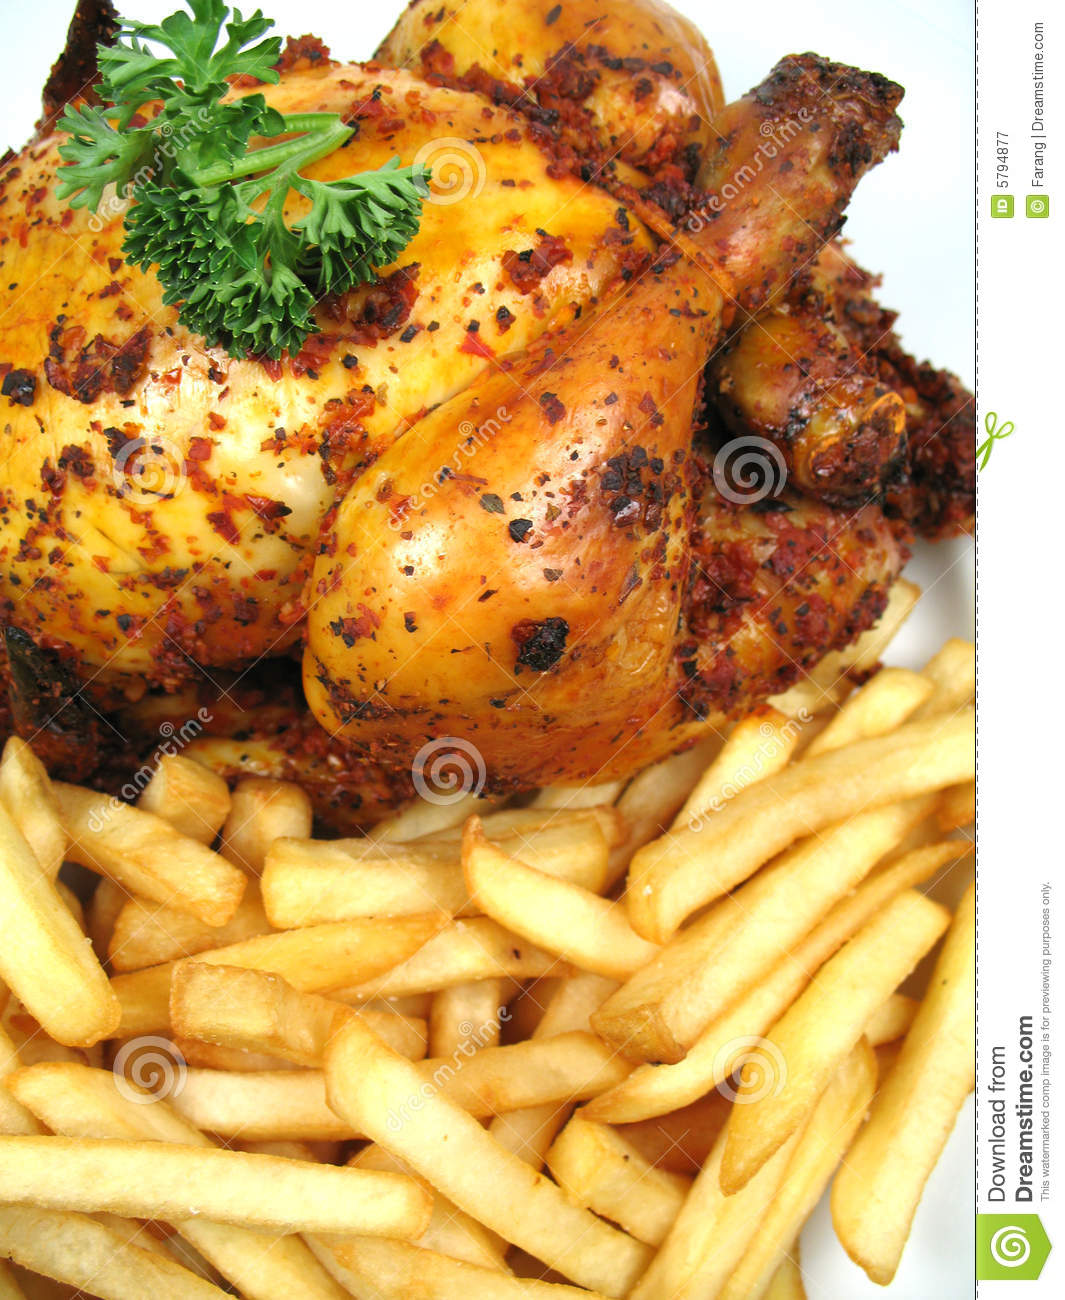 Chicken And Chips Royalty Free Stock Photography - Image: 5794877